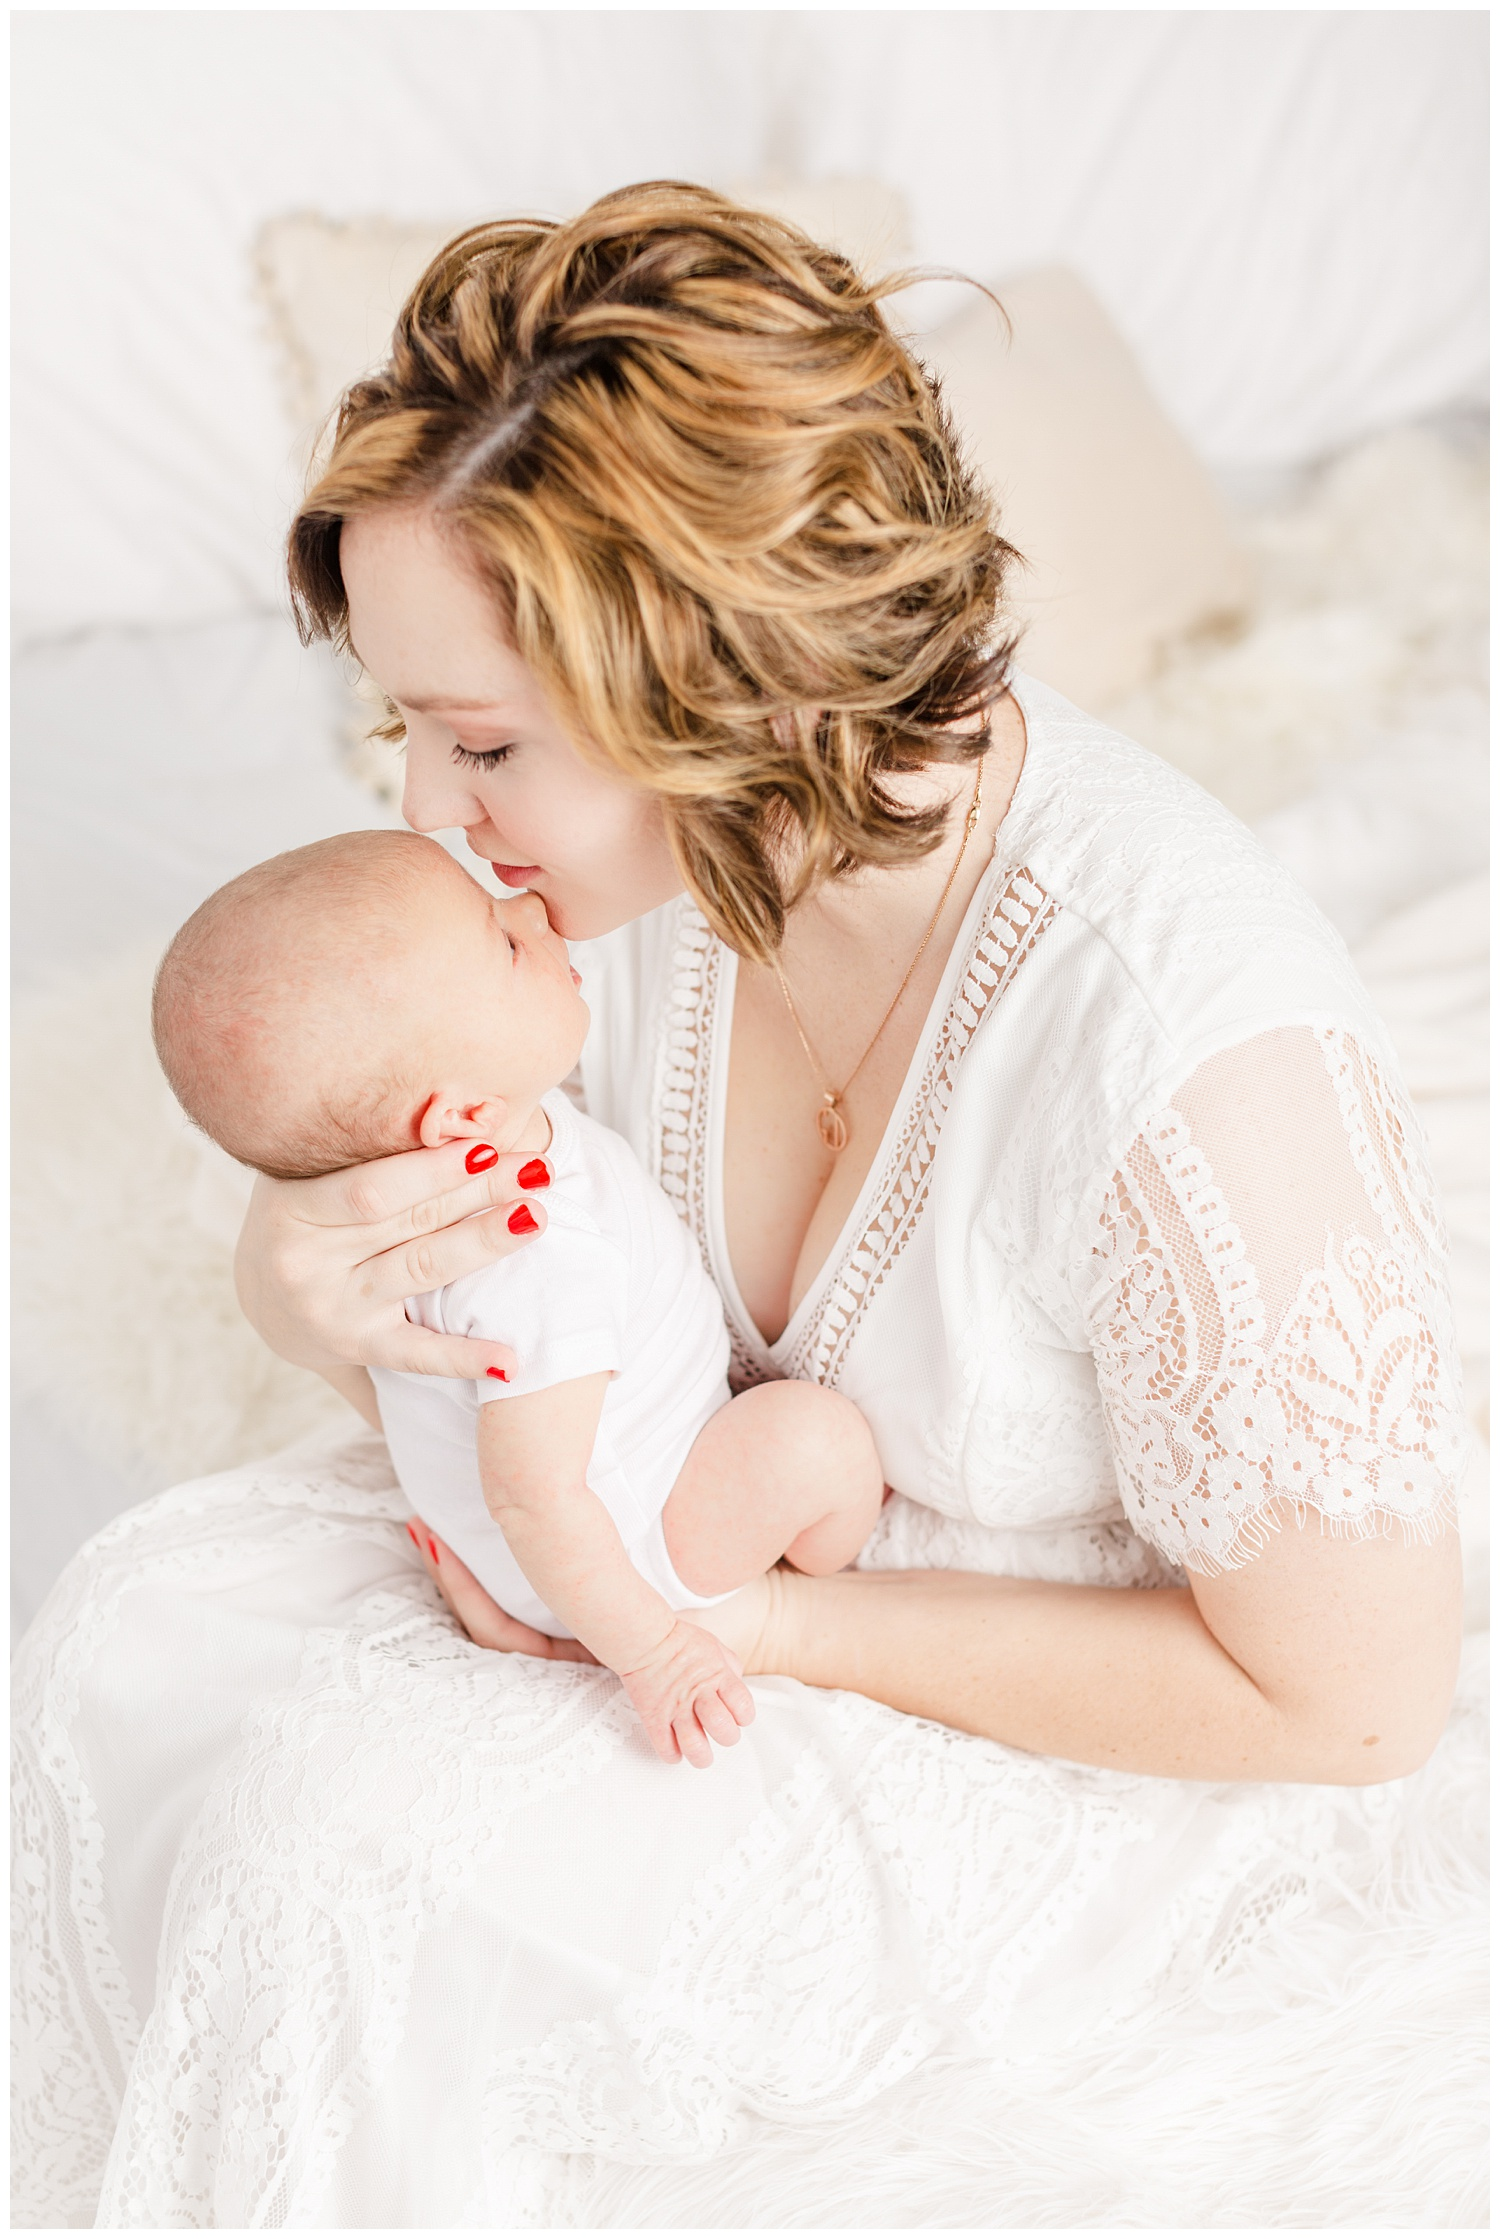 Bree dressed in white lace sits on her bed and gently kisses her new baby boy | CB Studio